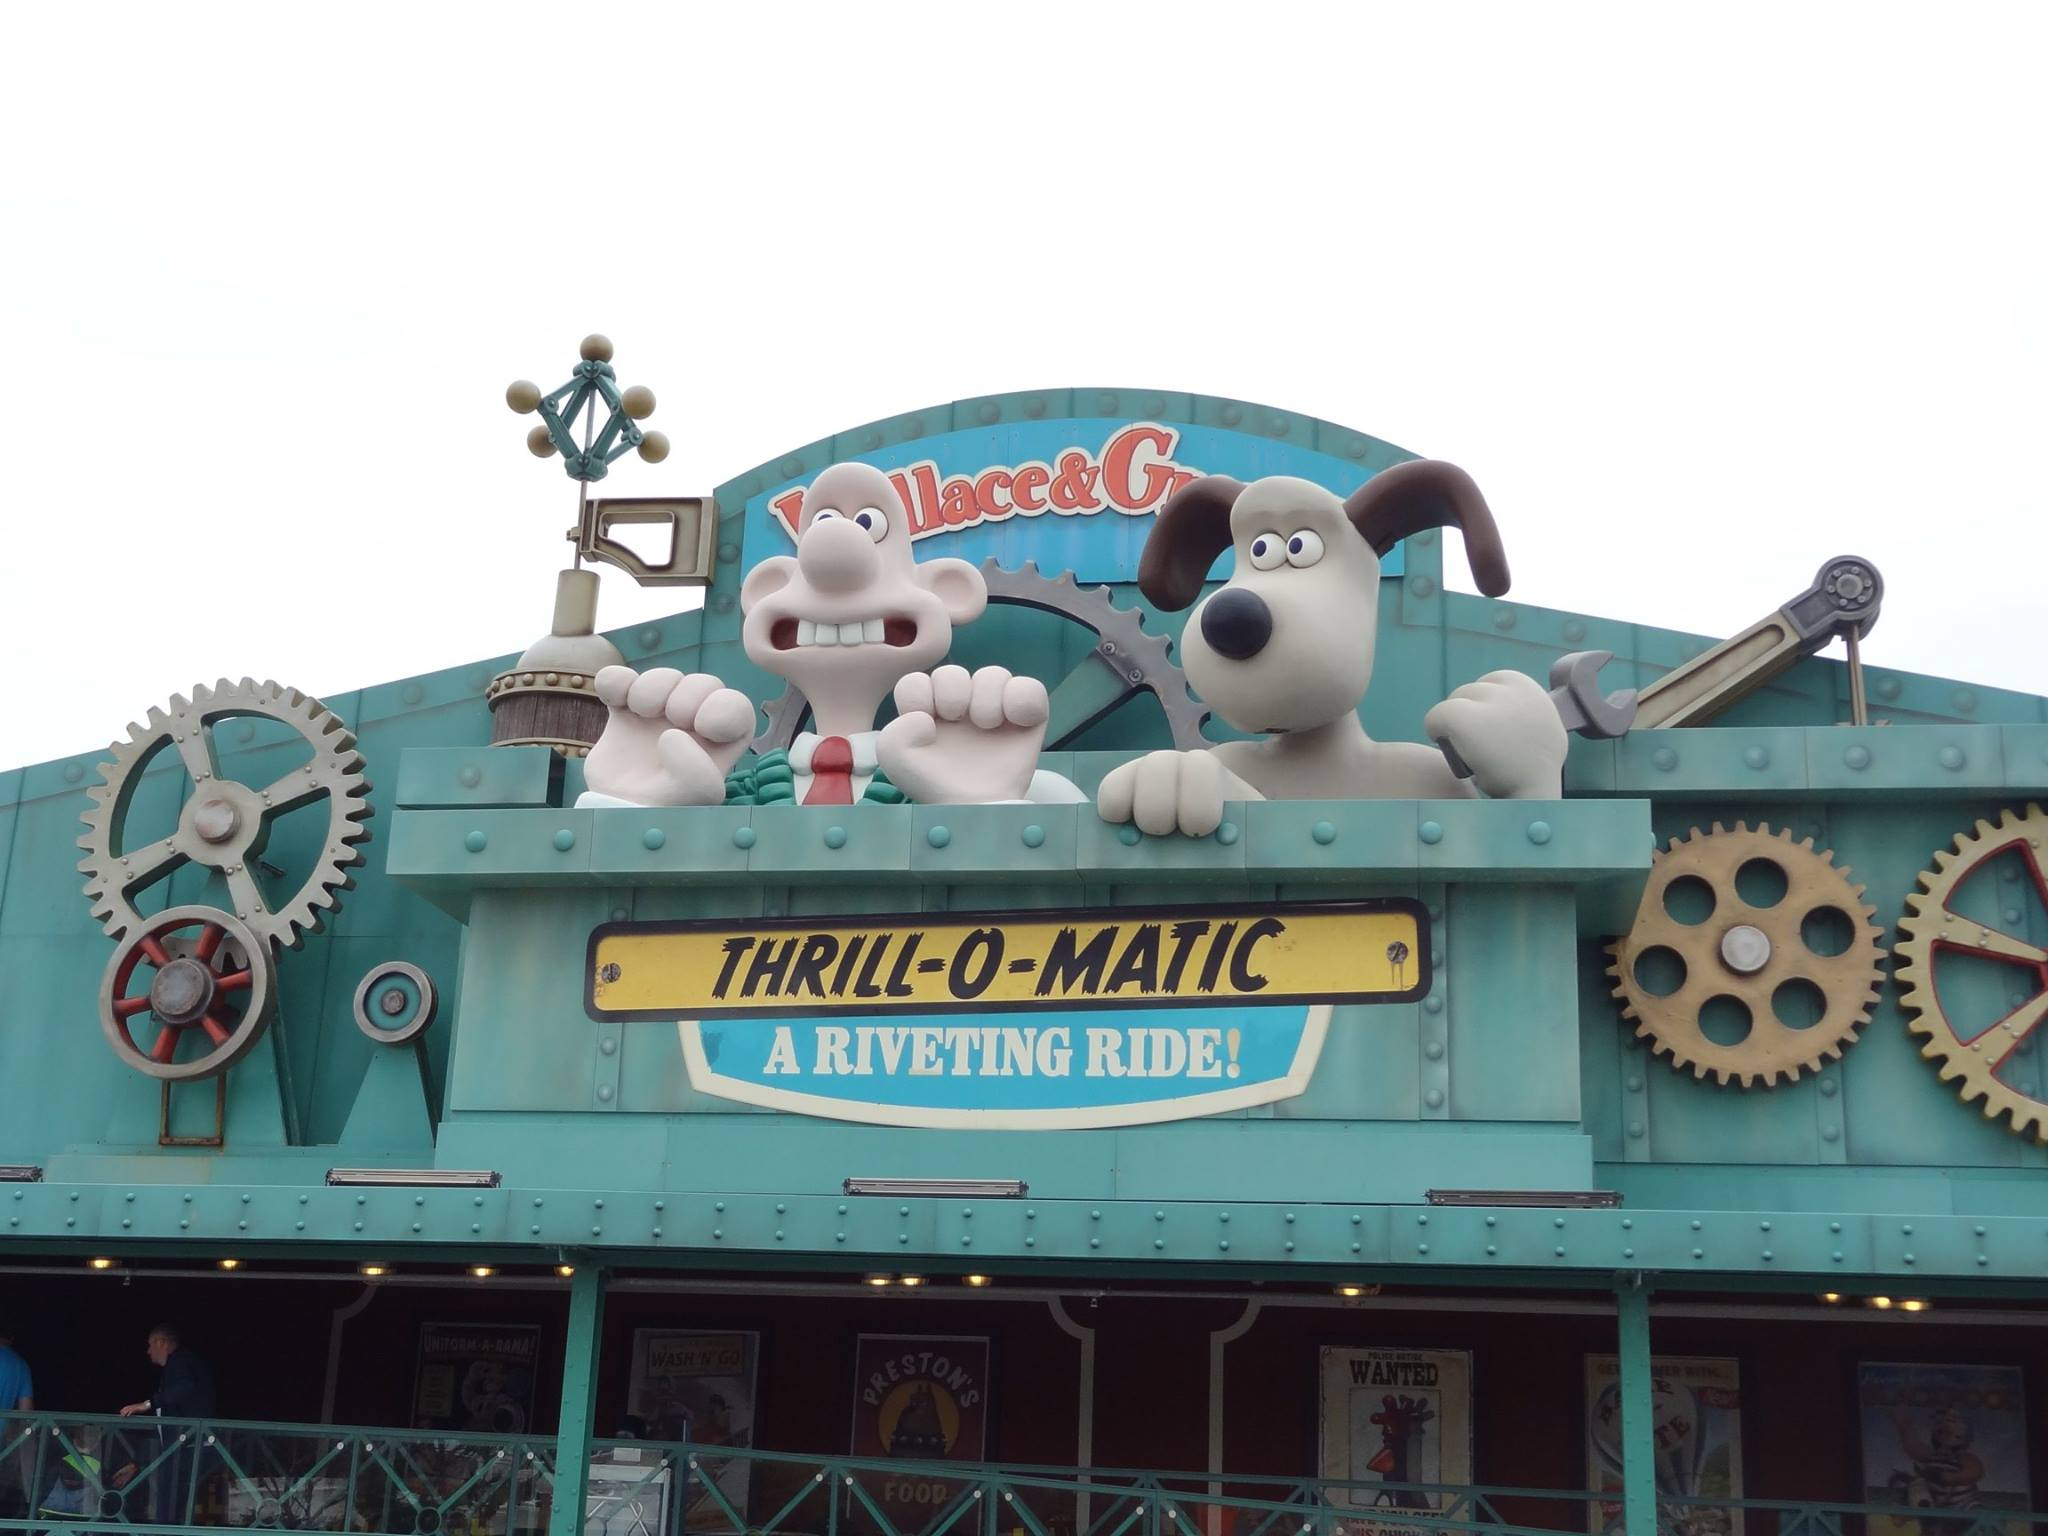 Wallace and Gromit Thrill-o-Matic Ride at Blackpool